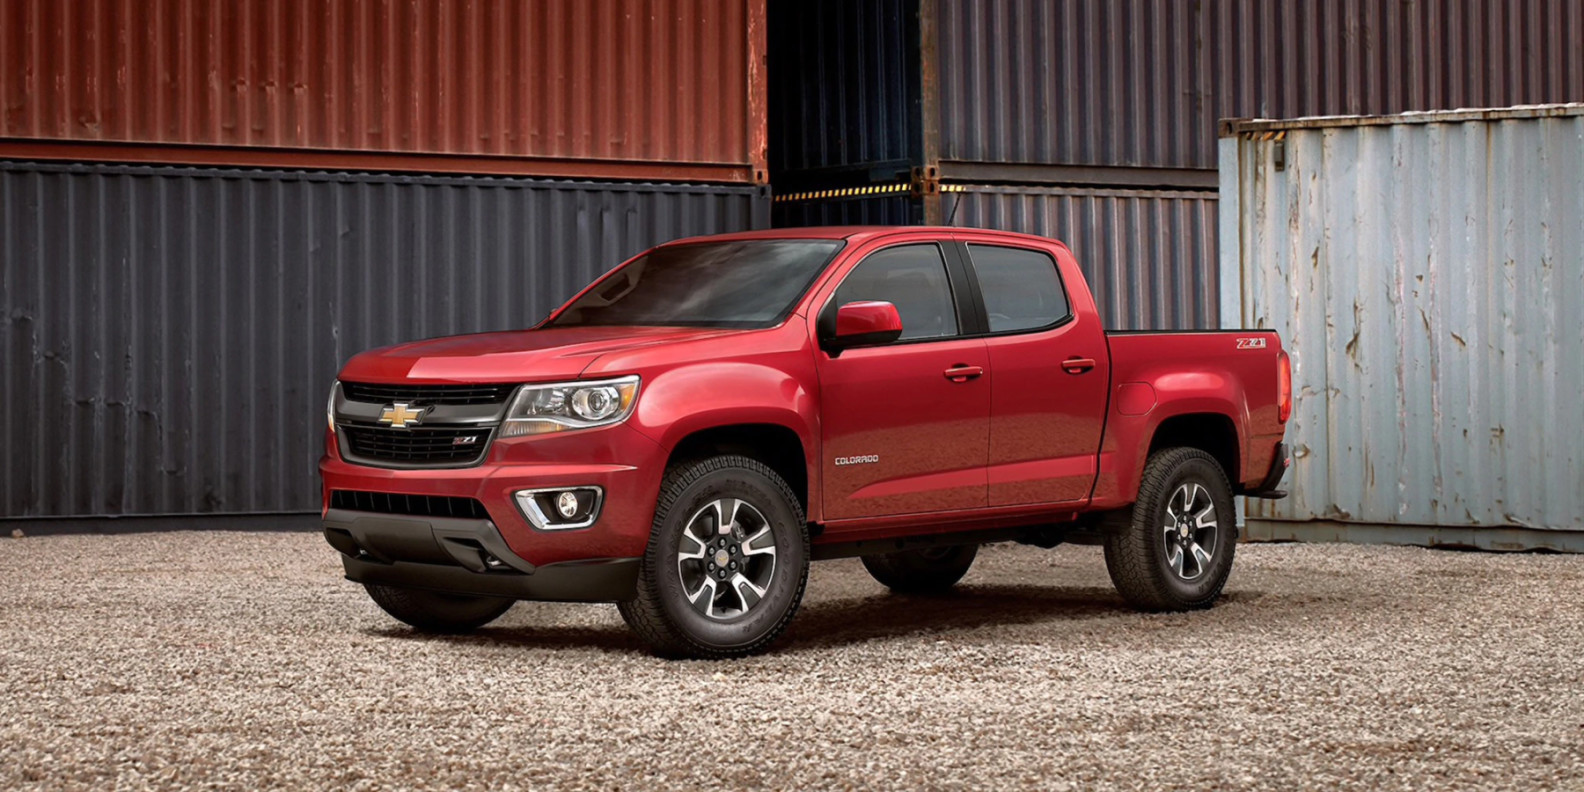 2020 Chevrolet Colorado vs 2020 Toyota Tacoma near Washington, DC